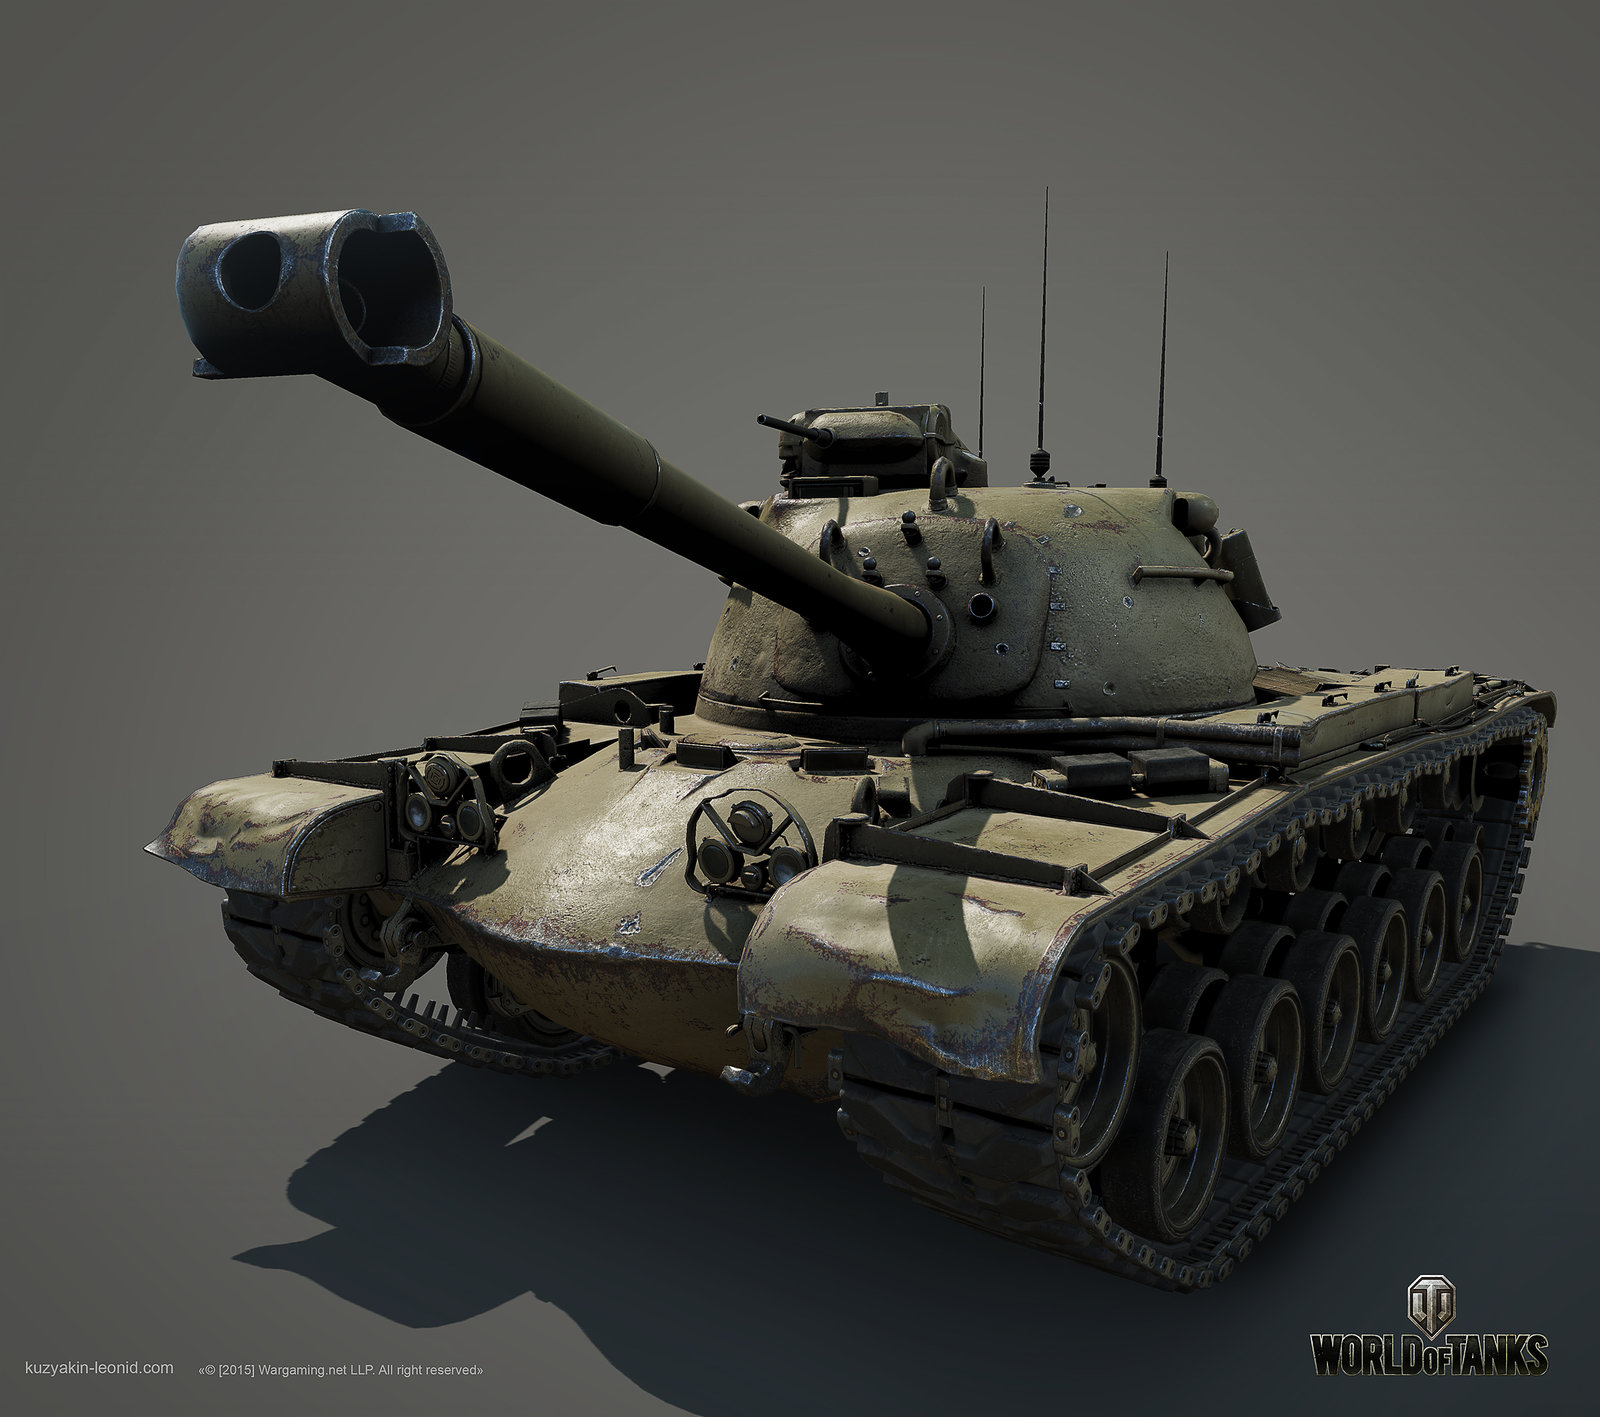 M48A1 Patton Main battle tank